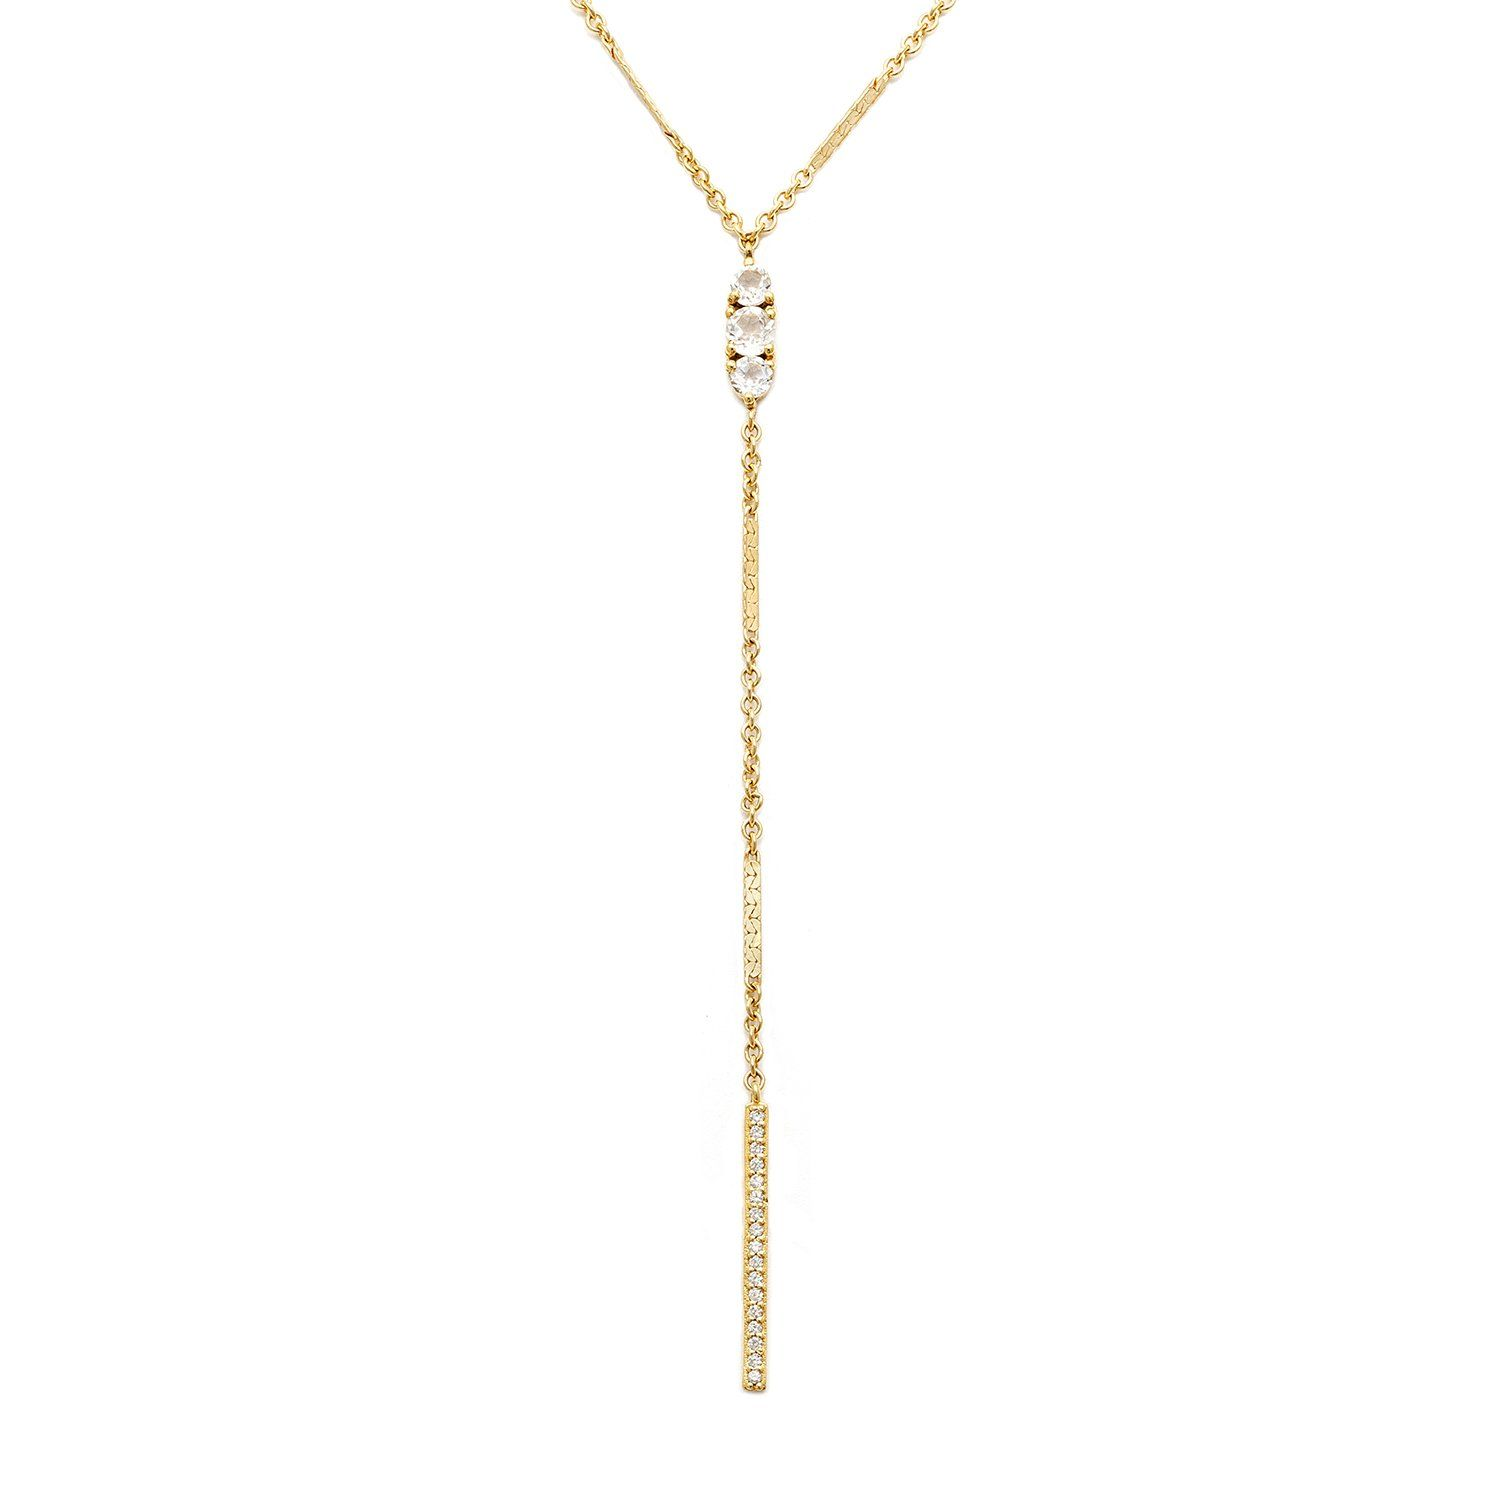 Wholesale Jewelry Gold Filled Circa Necklace White Topaz Jewelry Jewelry Wholesale